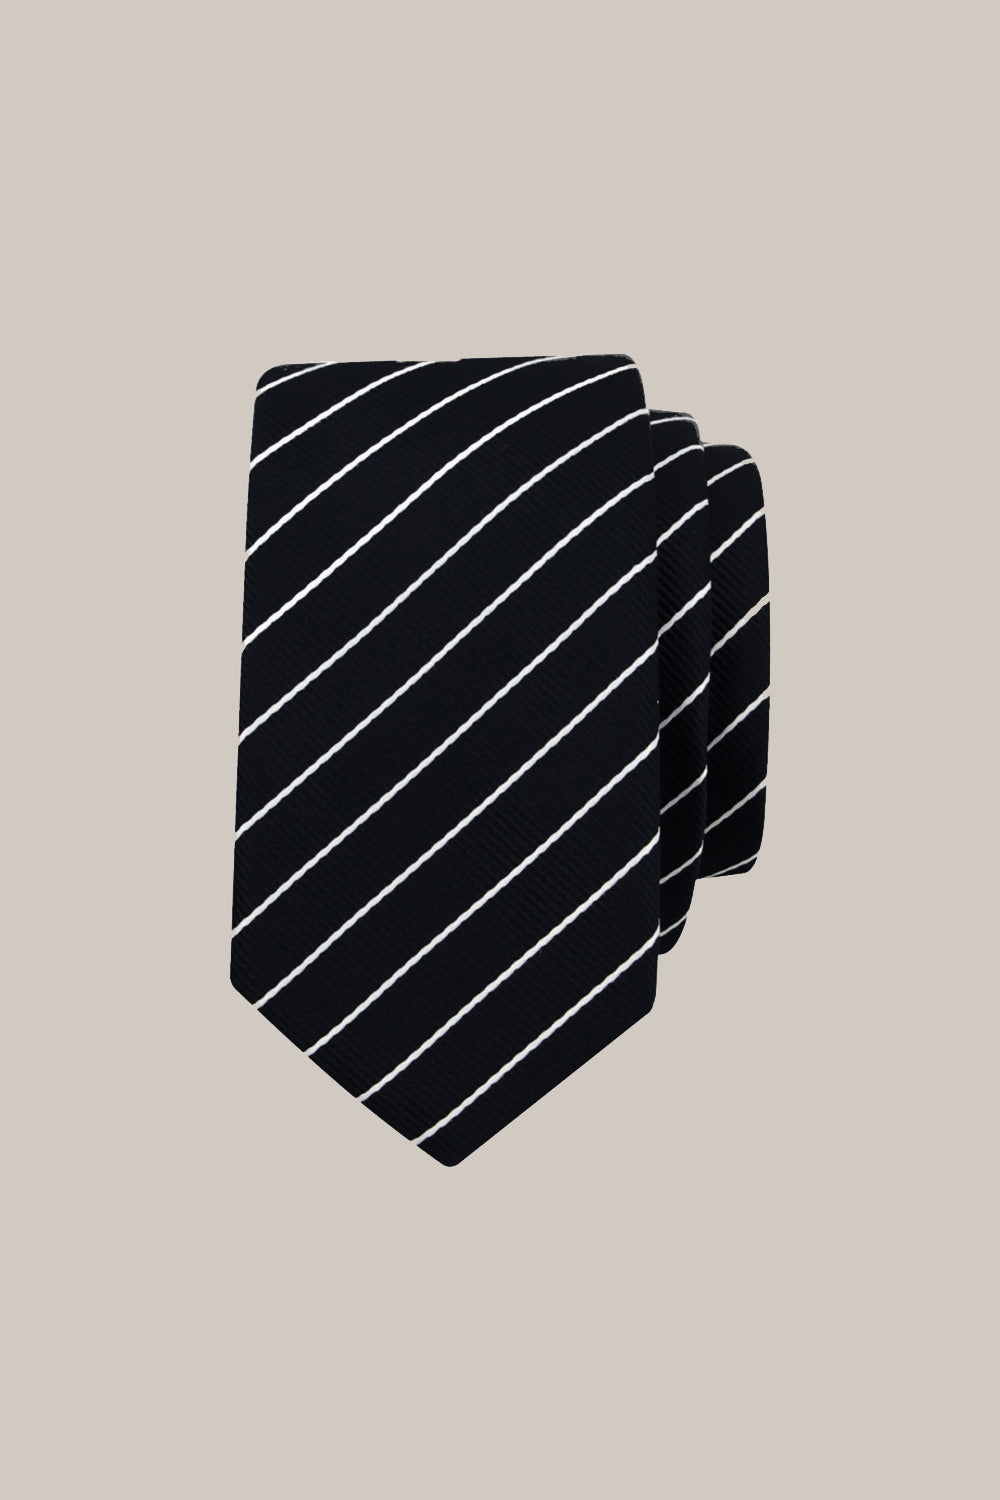 Formél Our For 5 Stripe Tie Accessories Black-White